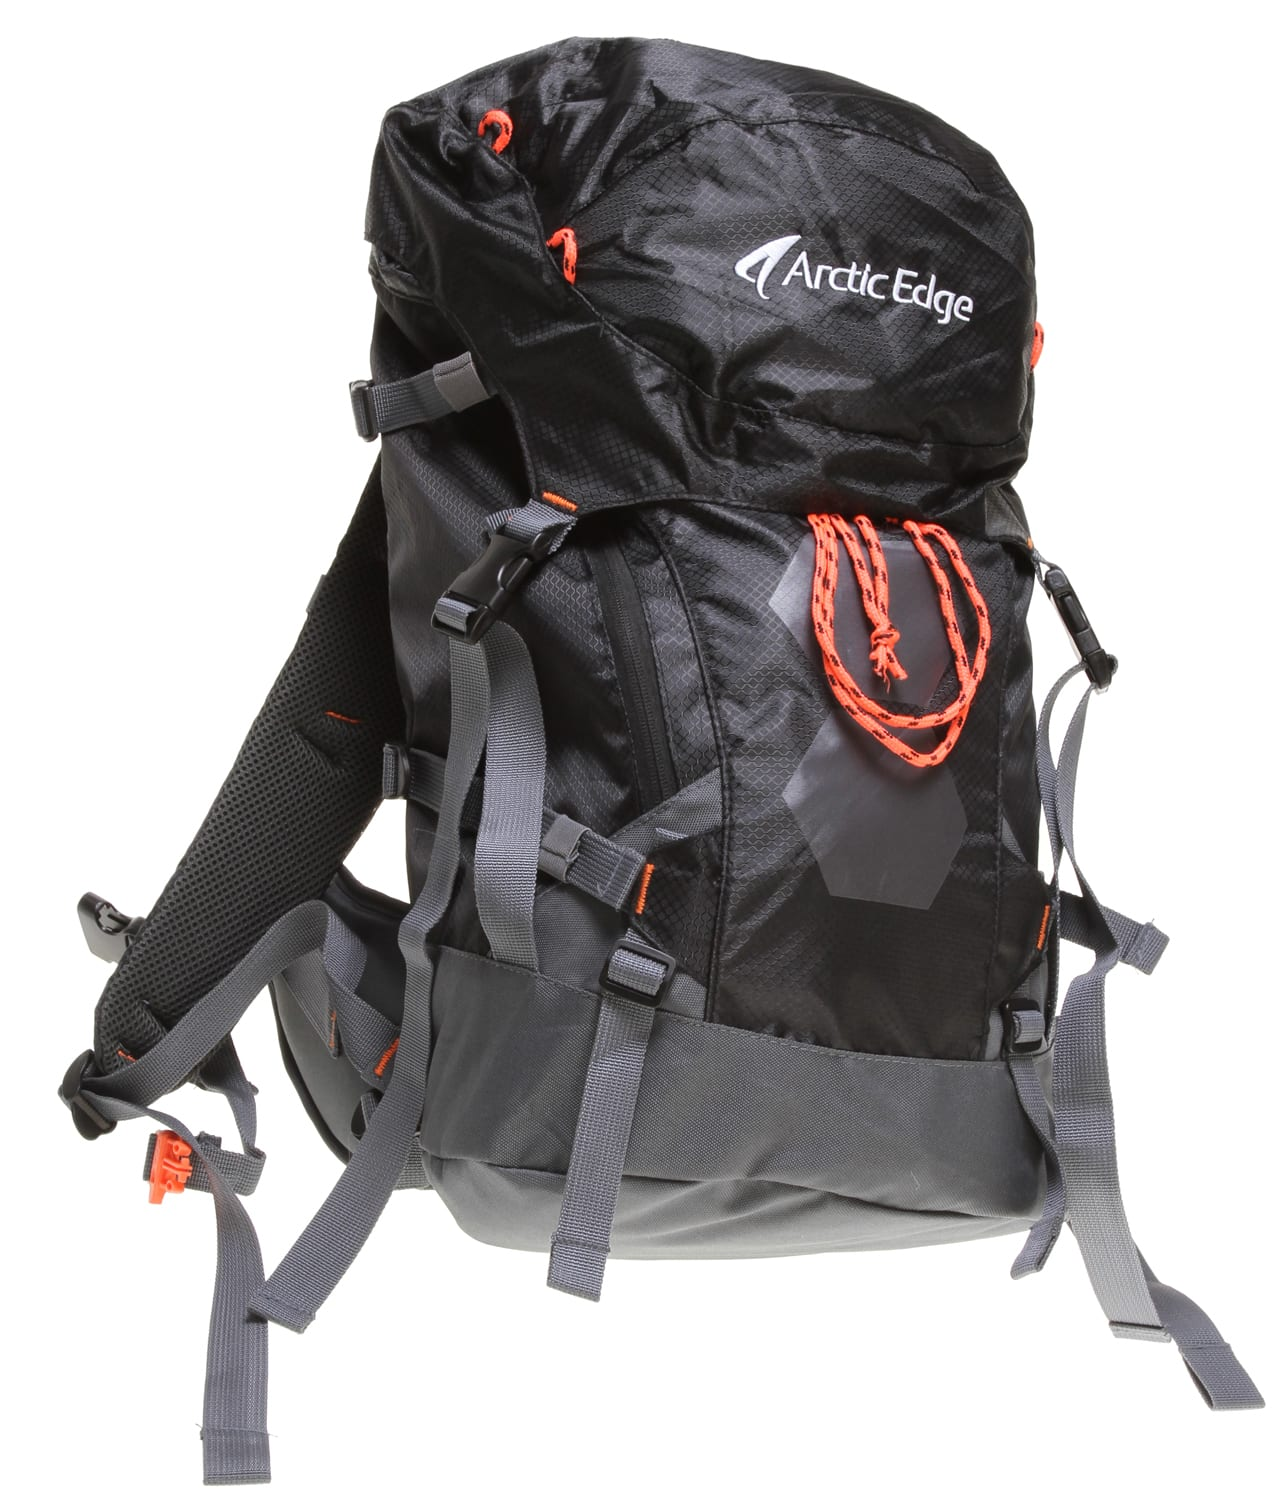 On Sale Arctic Edge Le Tour Backpack up to 65% off